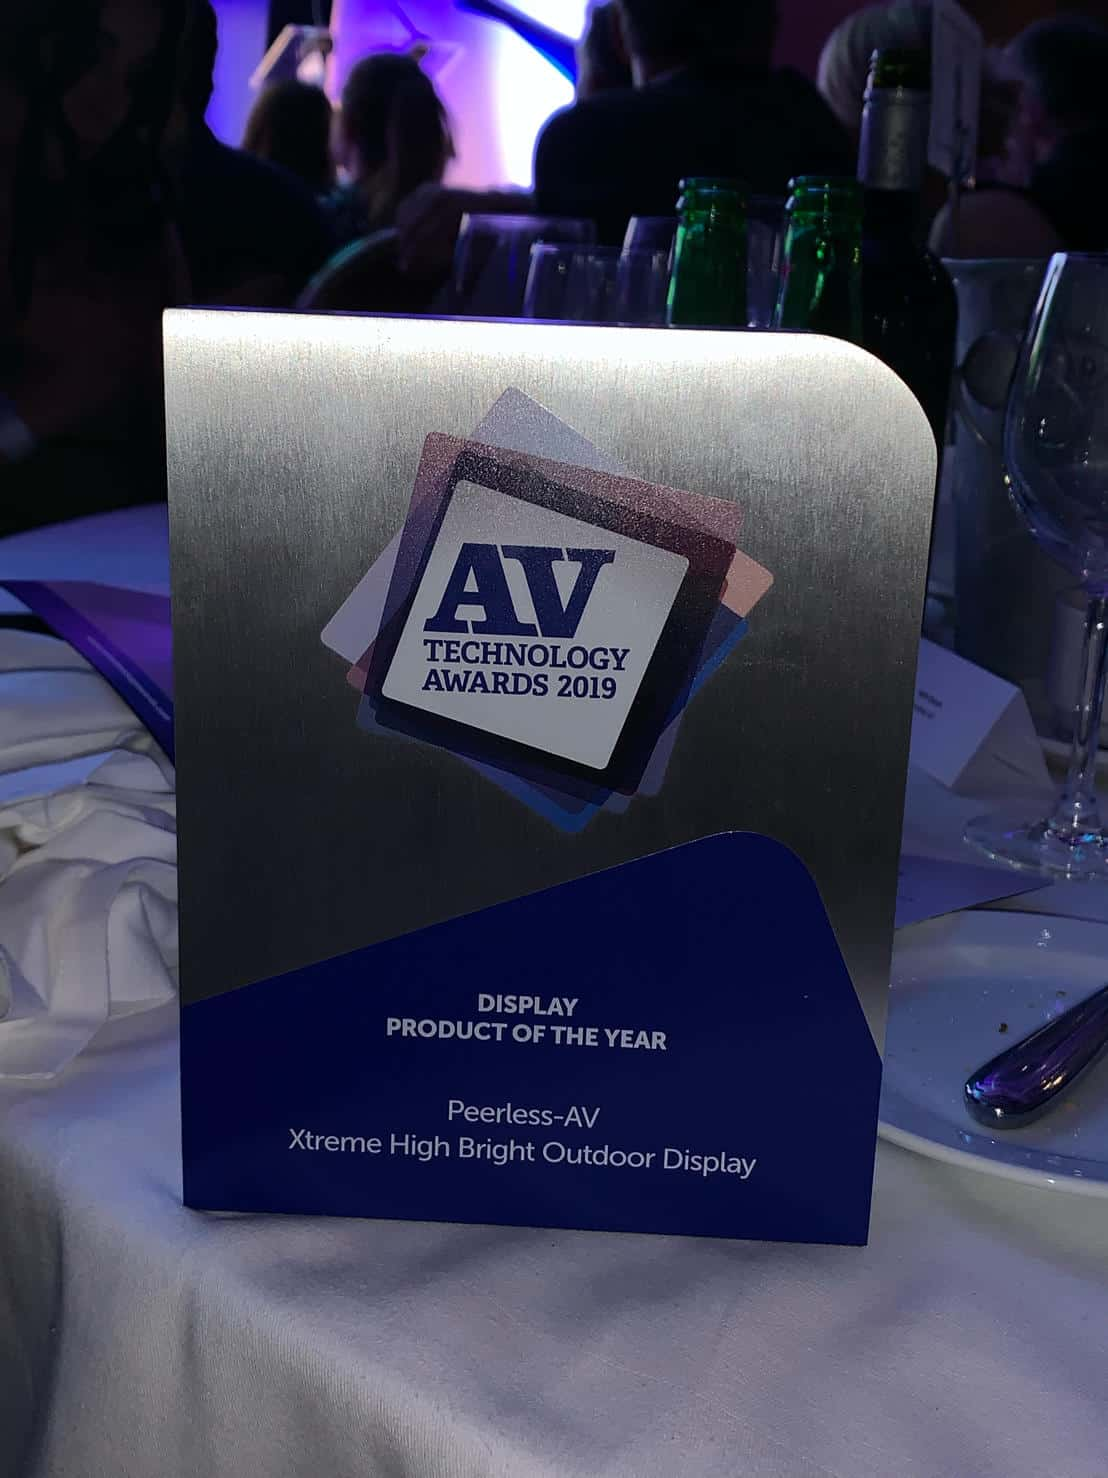 AVT Technology Awards Peerless-AV